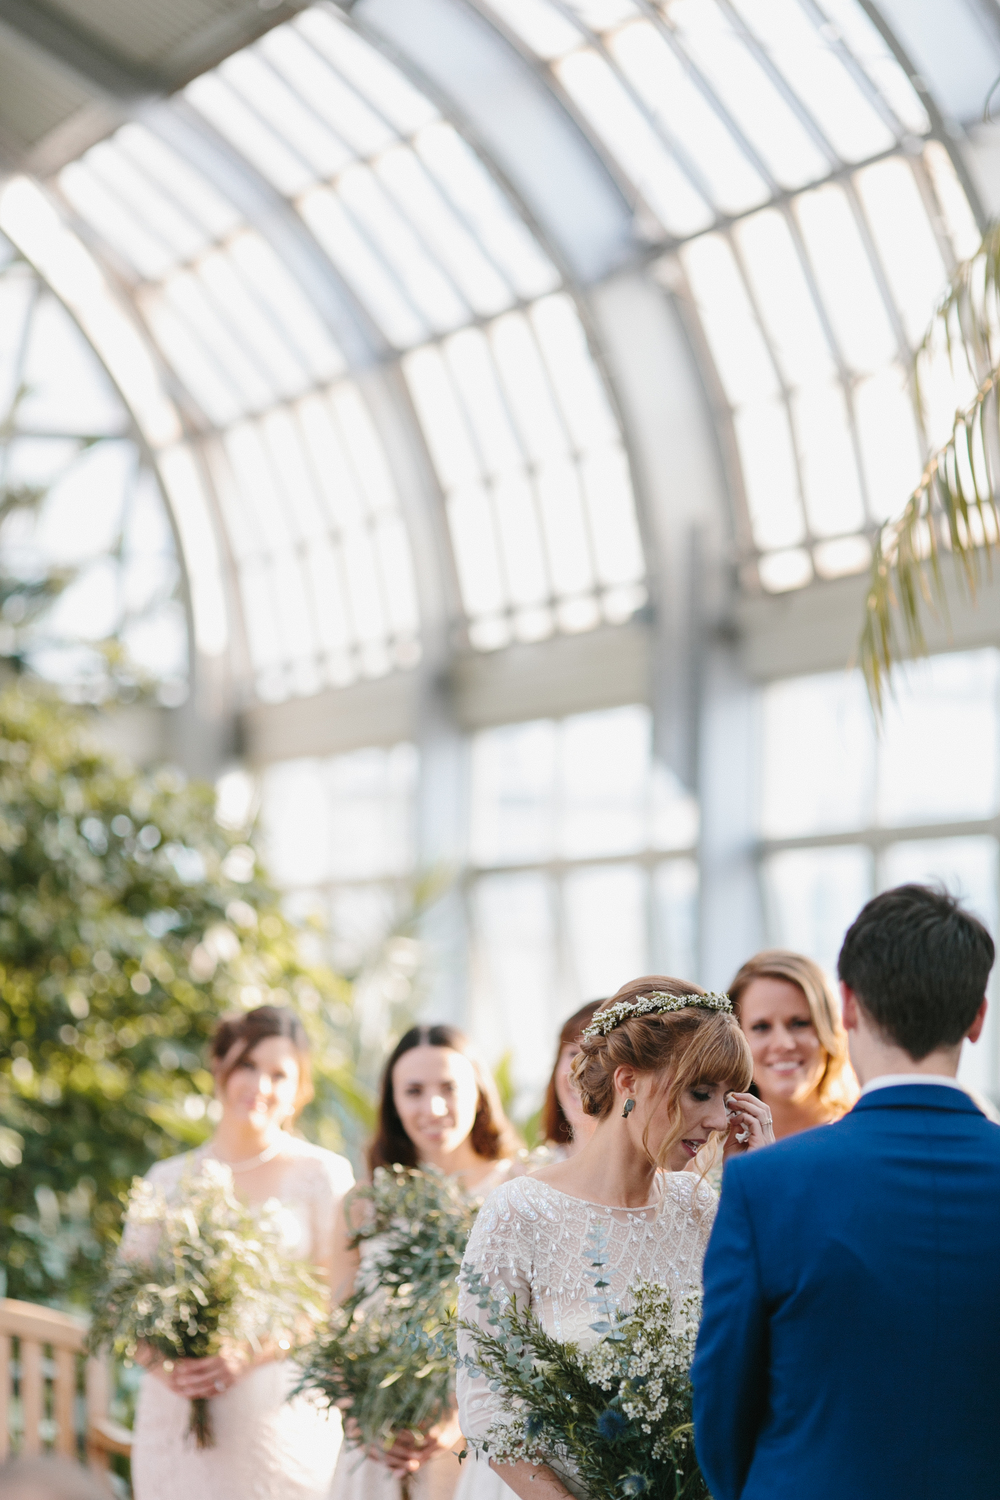 Chicago Wedding Garfield Park Conservatory Mae Stier Wedding Photographer Lifestyle Photography Midwest California-057.jpg